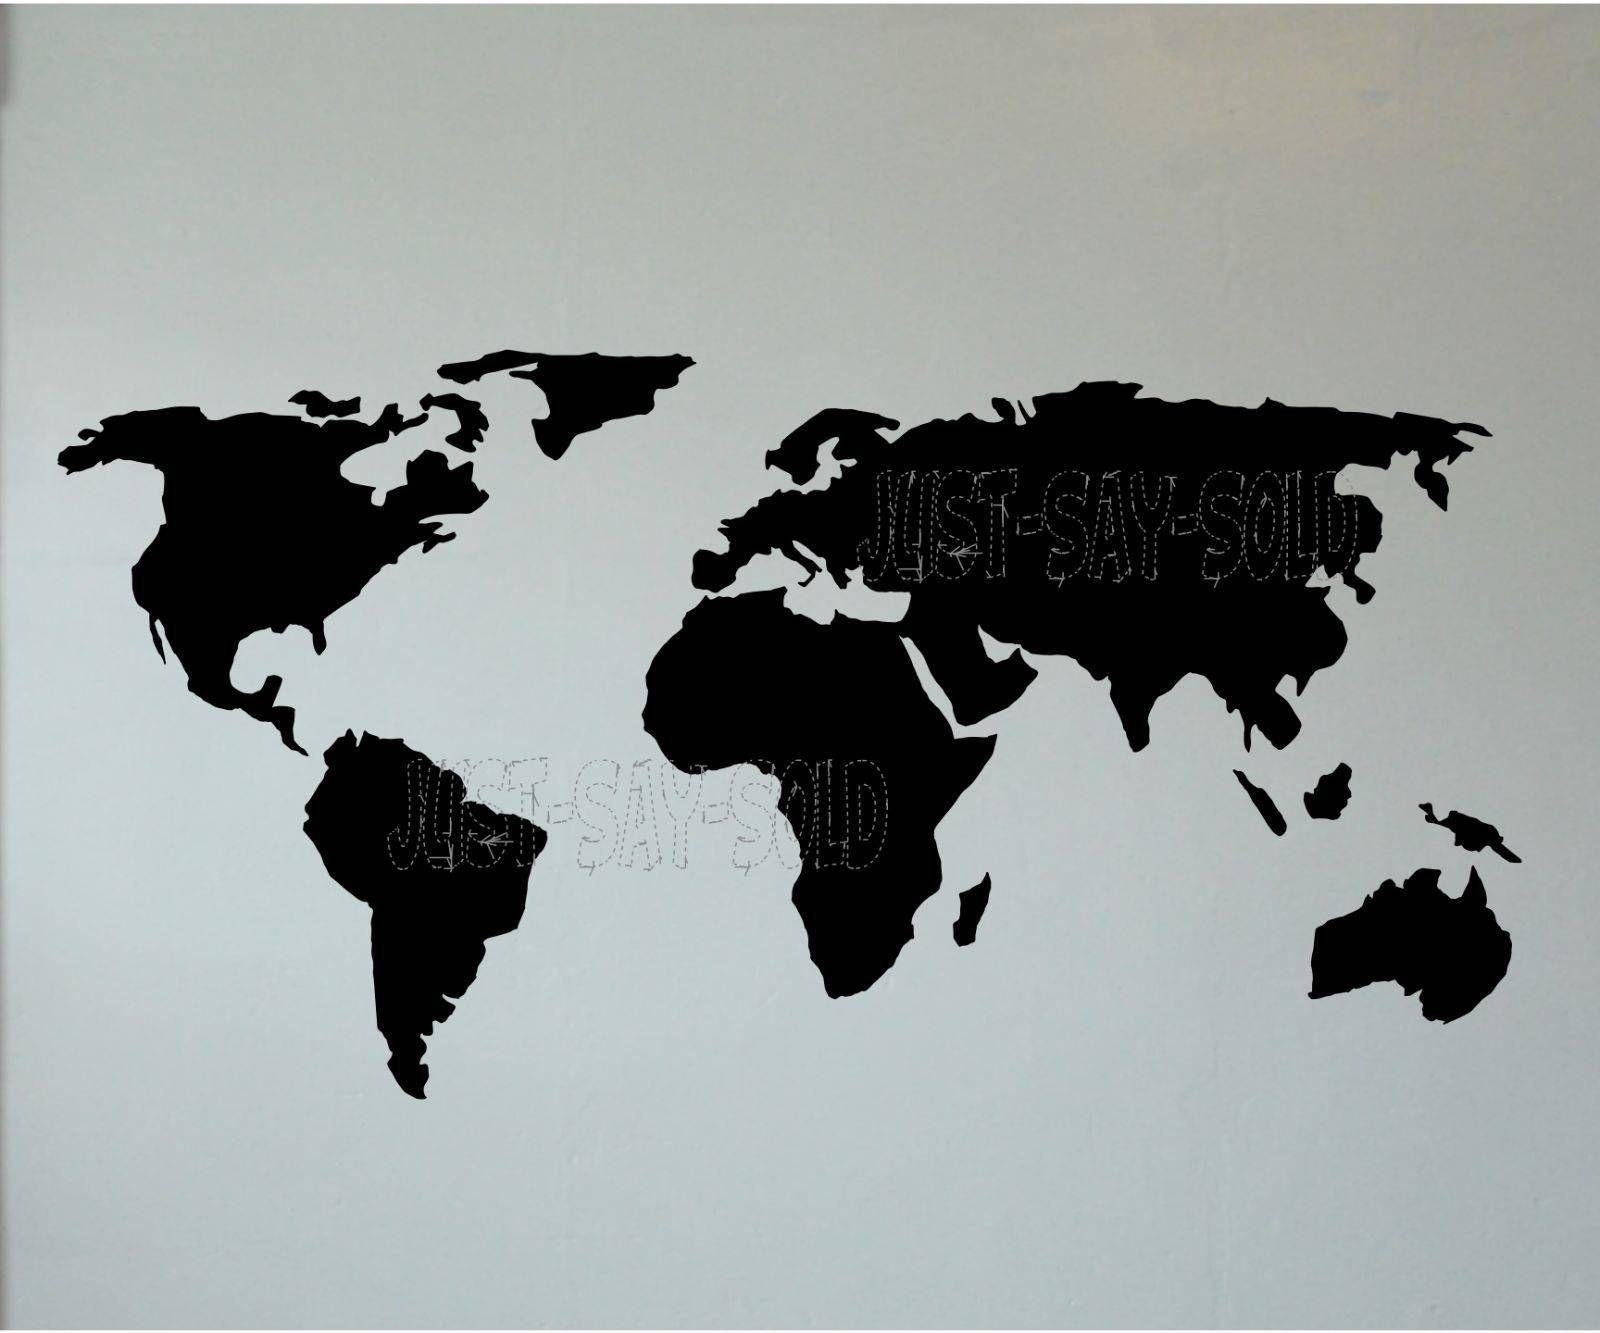 Cool world map graphic artwork decals for wall diy artwork cool world map graphic artwork decals for wall diy artwork choose shade detachable perm check more at gumiabroncs Image collections